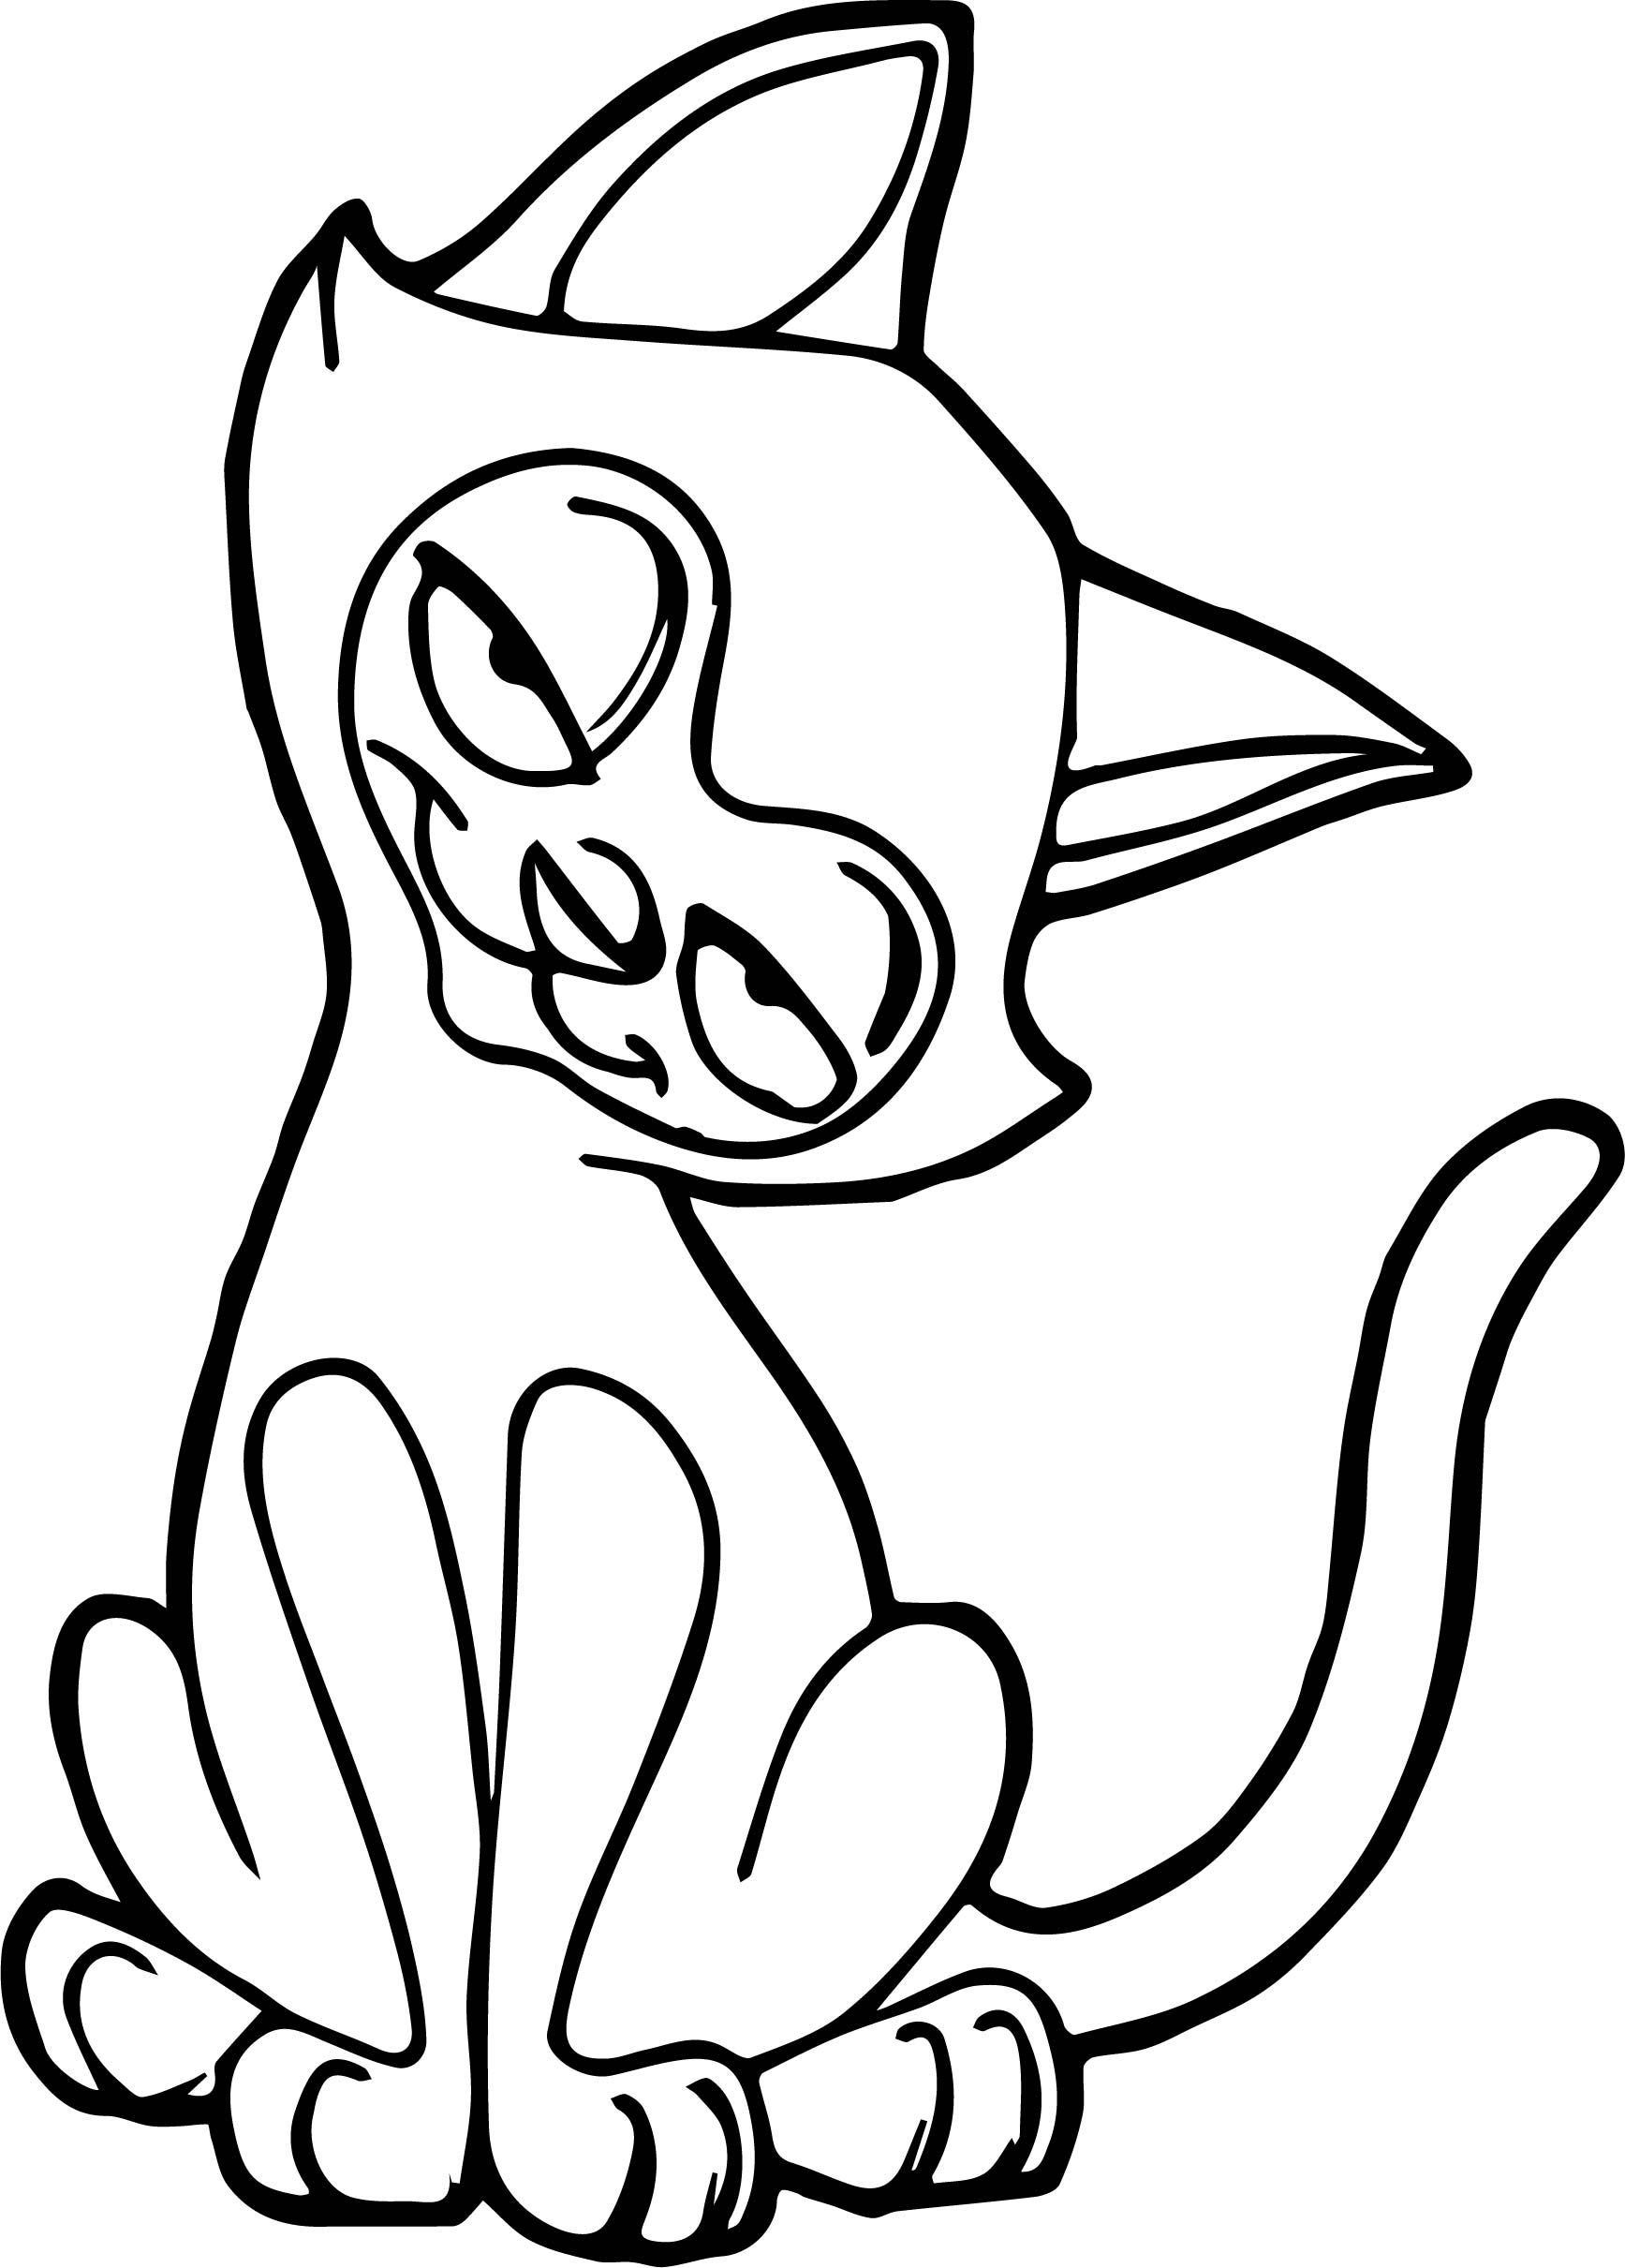 Cat Coloring Pages Coloring Rocks Cat Coloring Page Animal Coloring Pages Coloring Pages